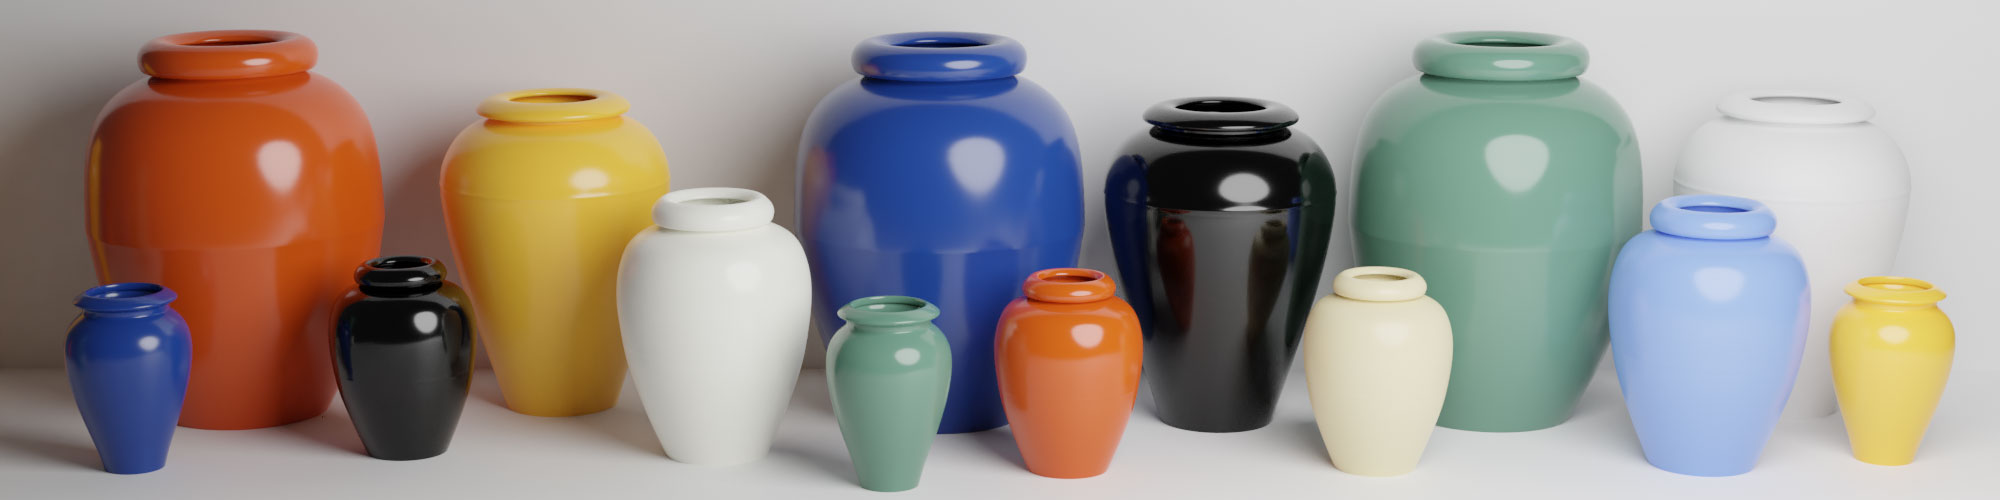 Bauer Pottery Oil Jars